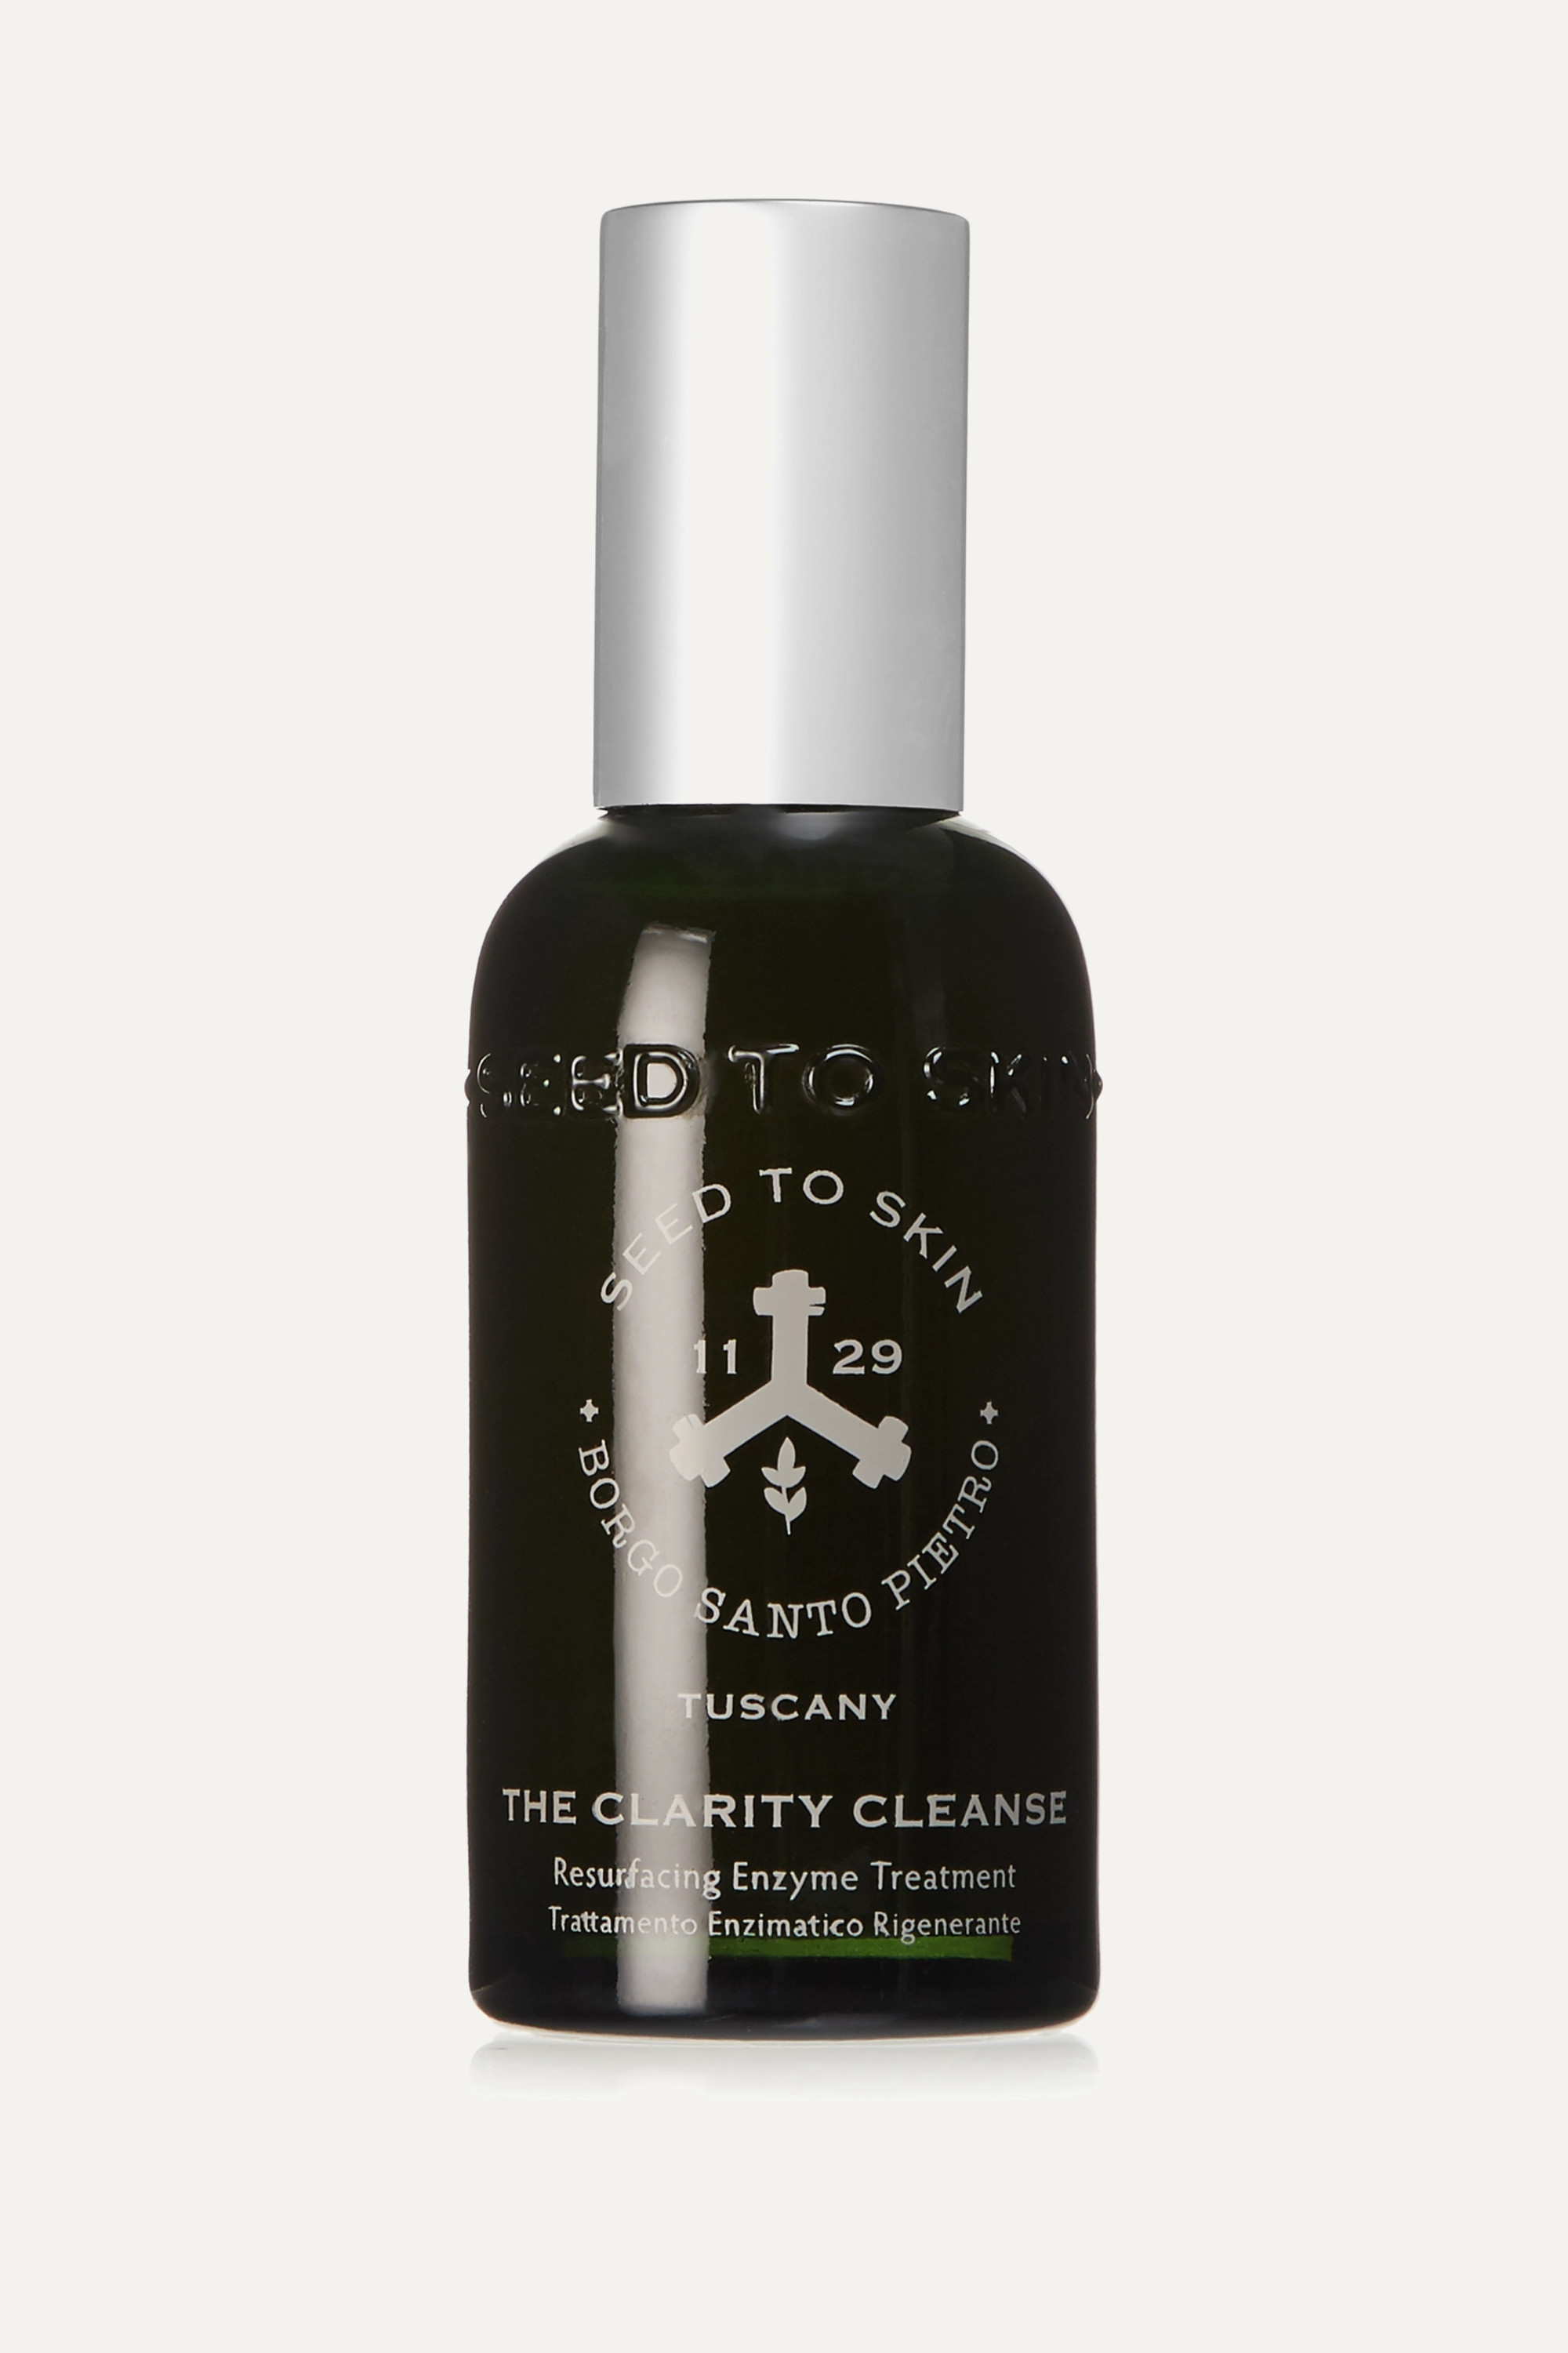 Seed to Skin The Clarity Cleanse, 100 ml – Cleanser